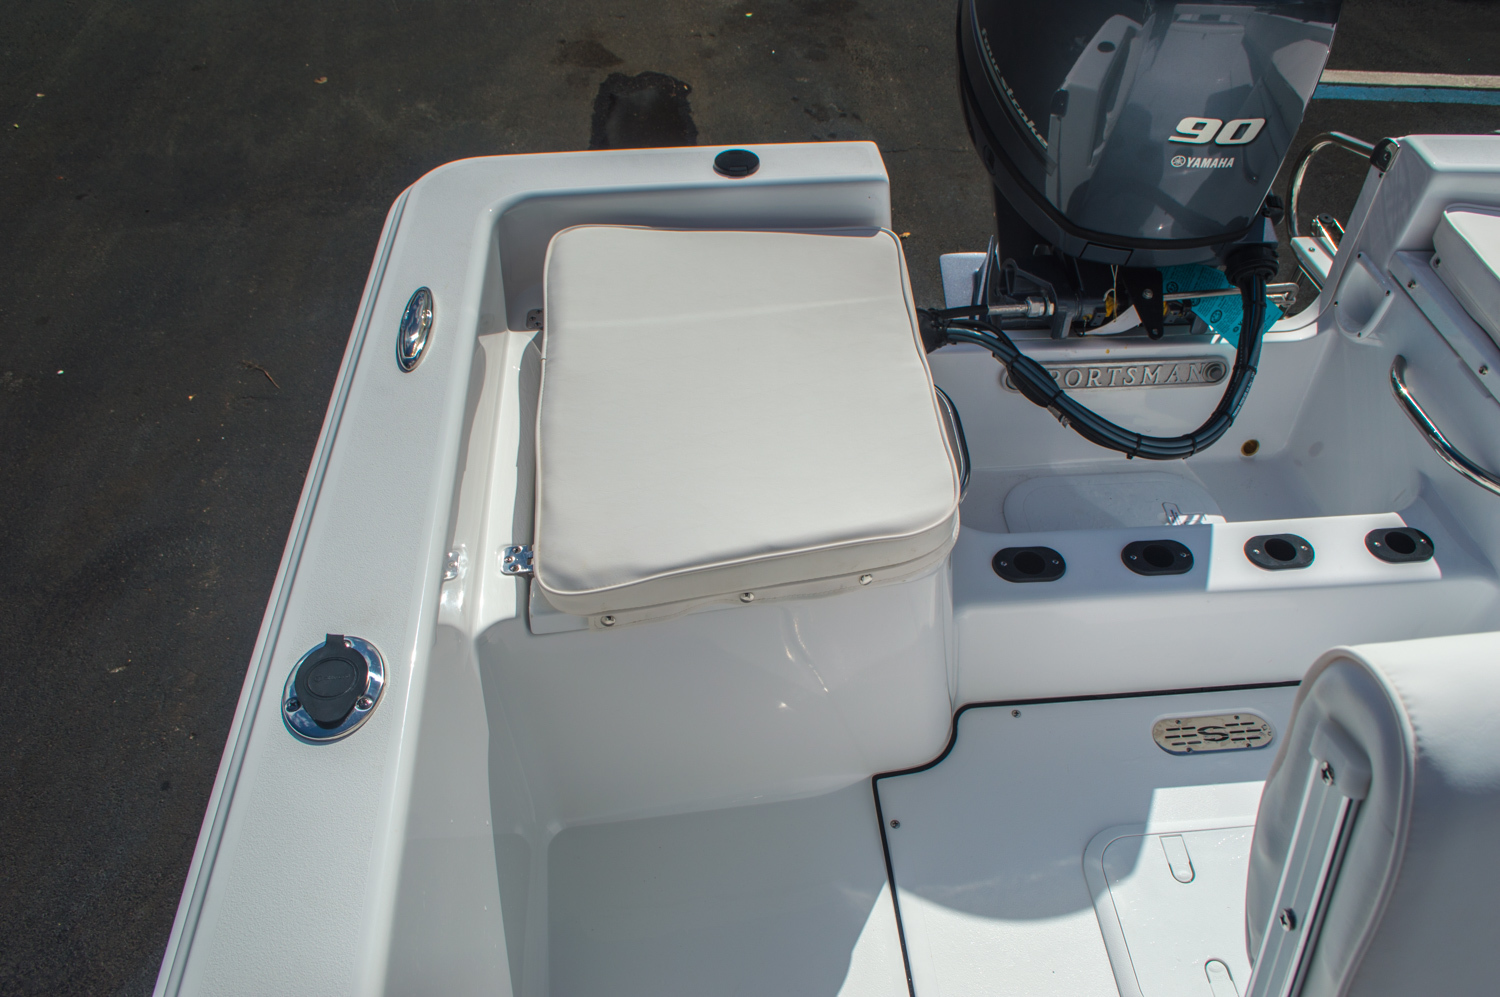 Thumbnail 24 for New 2016 Sportsman 19 Island Reef boat for sale in West Palm Beach, FL